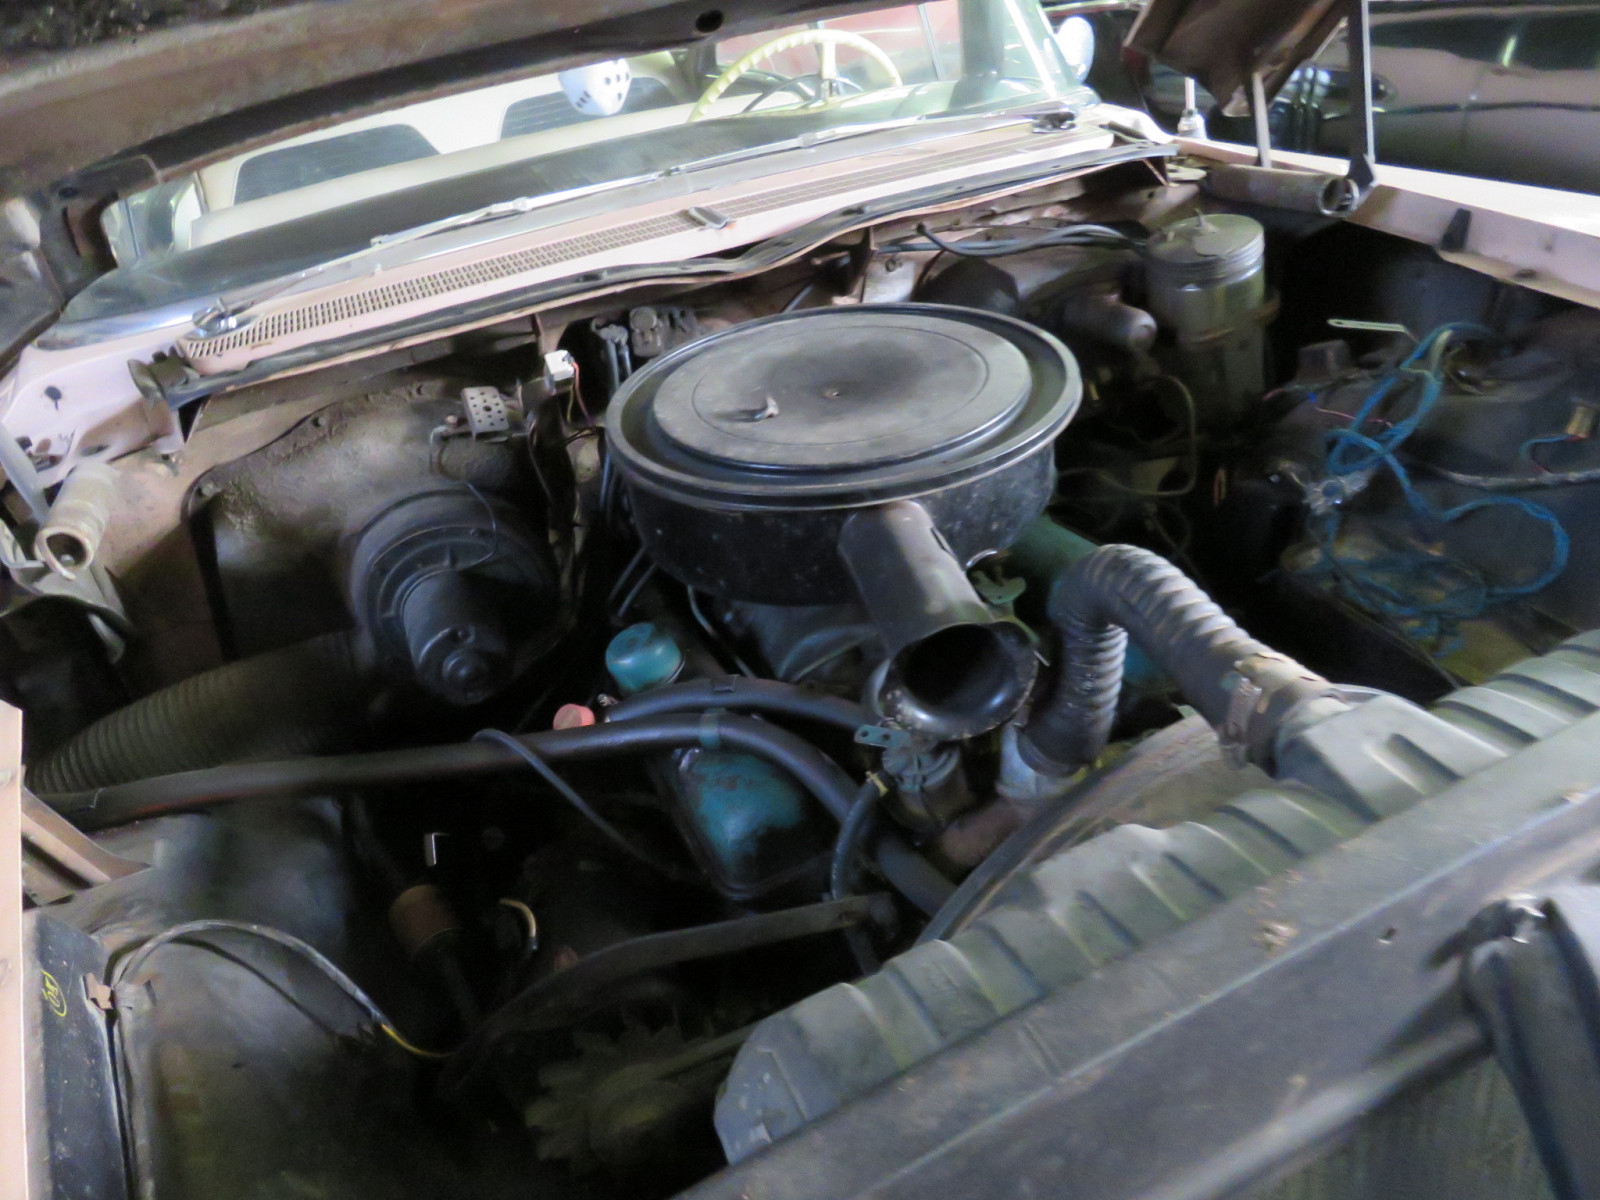 1958 Buick Special 4dr HT - Image 8